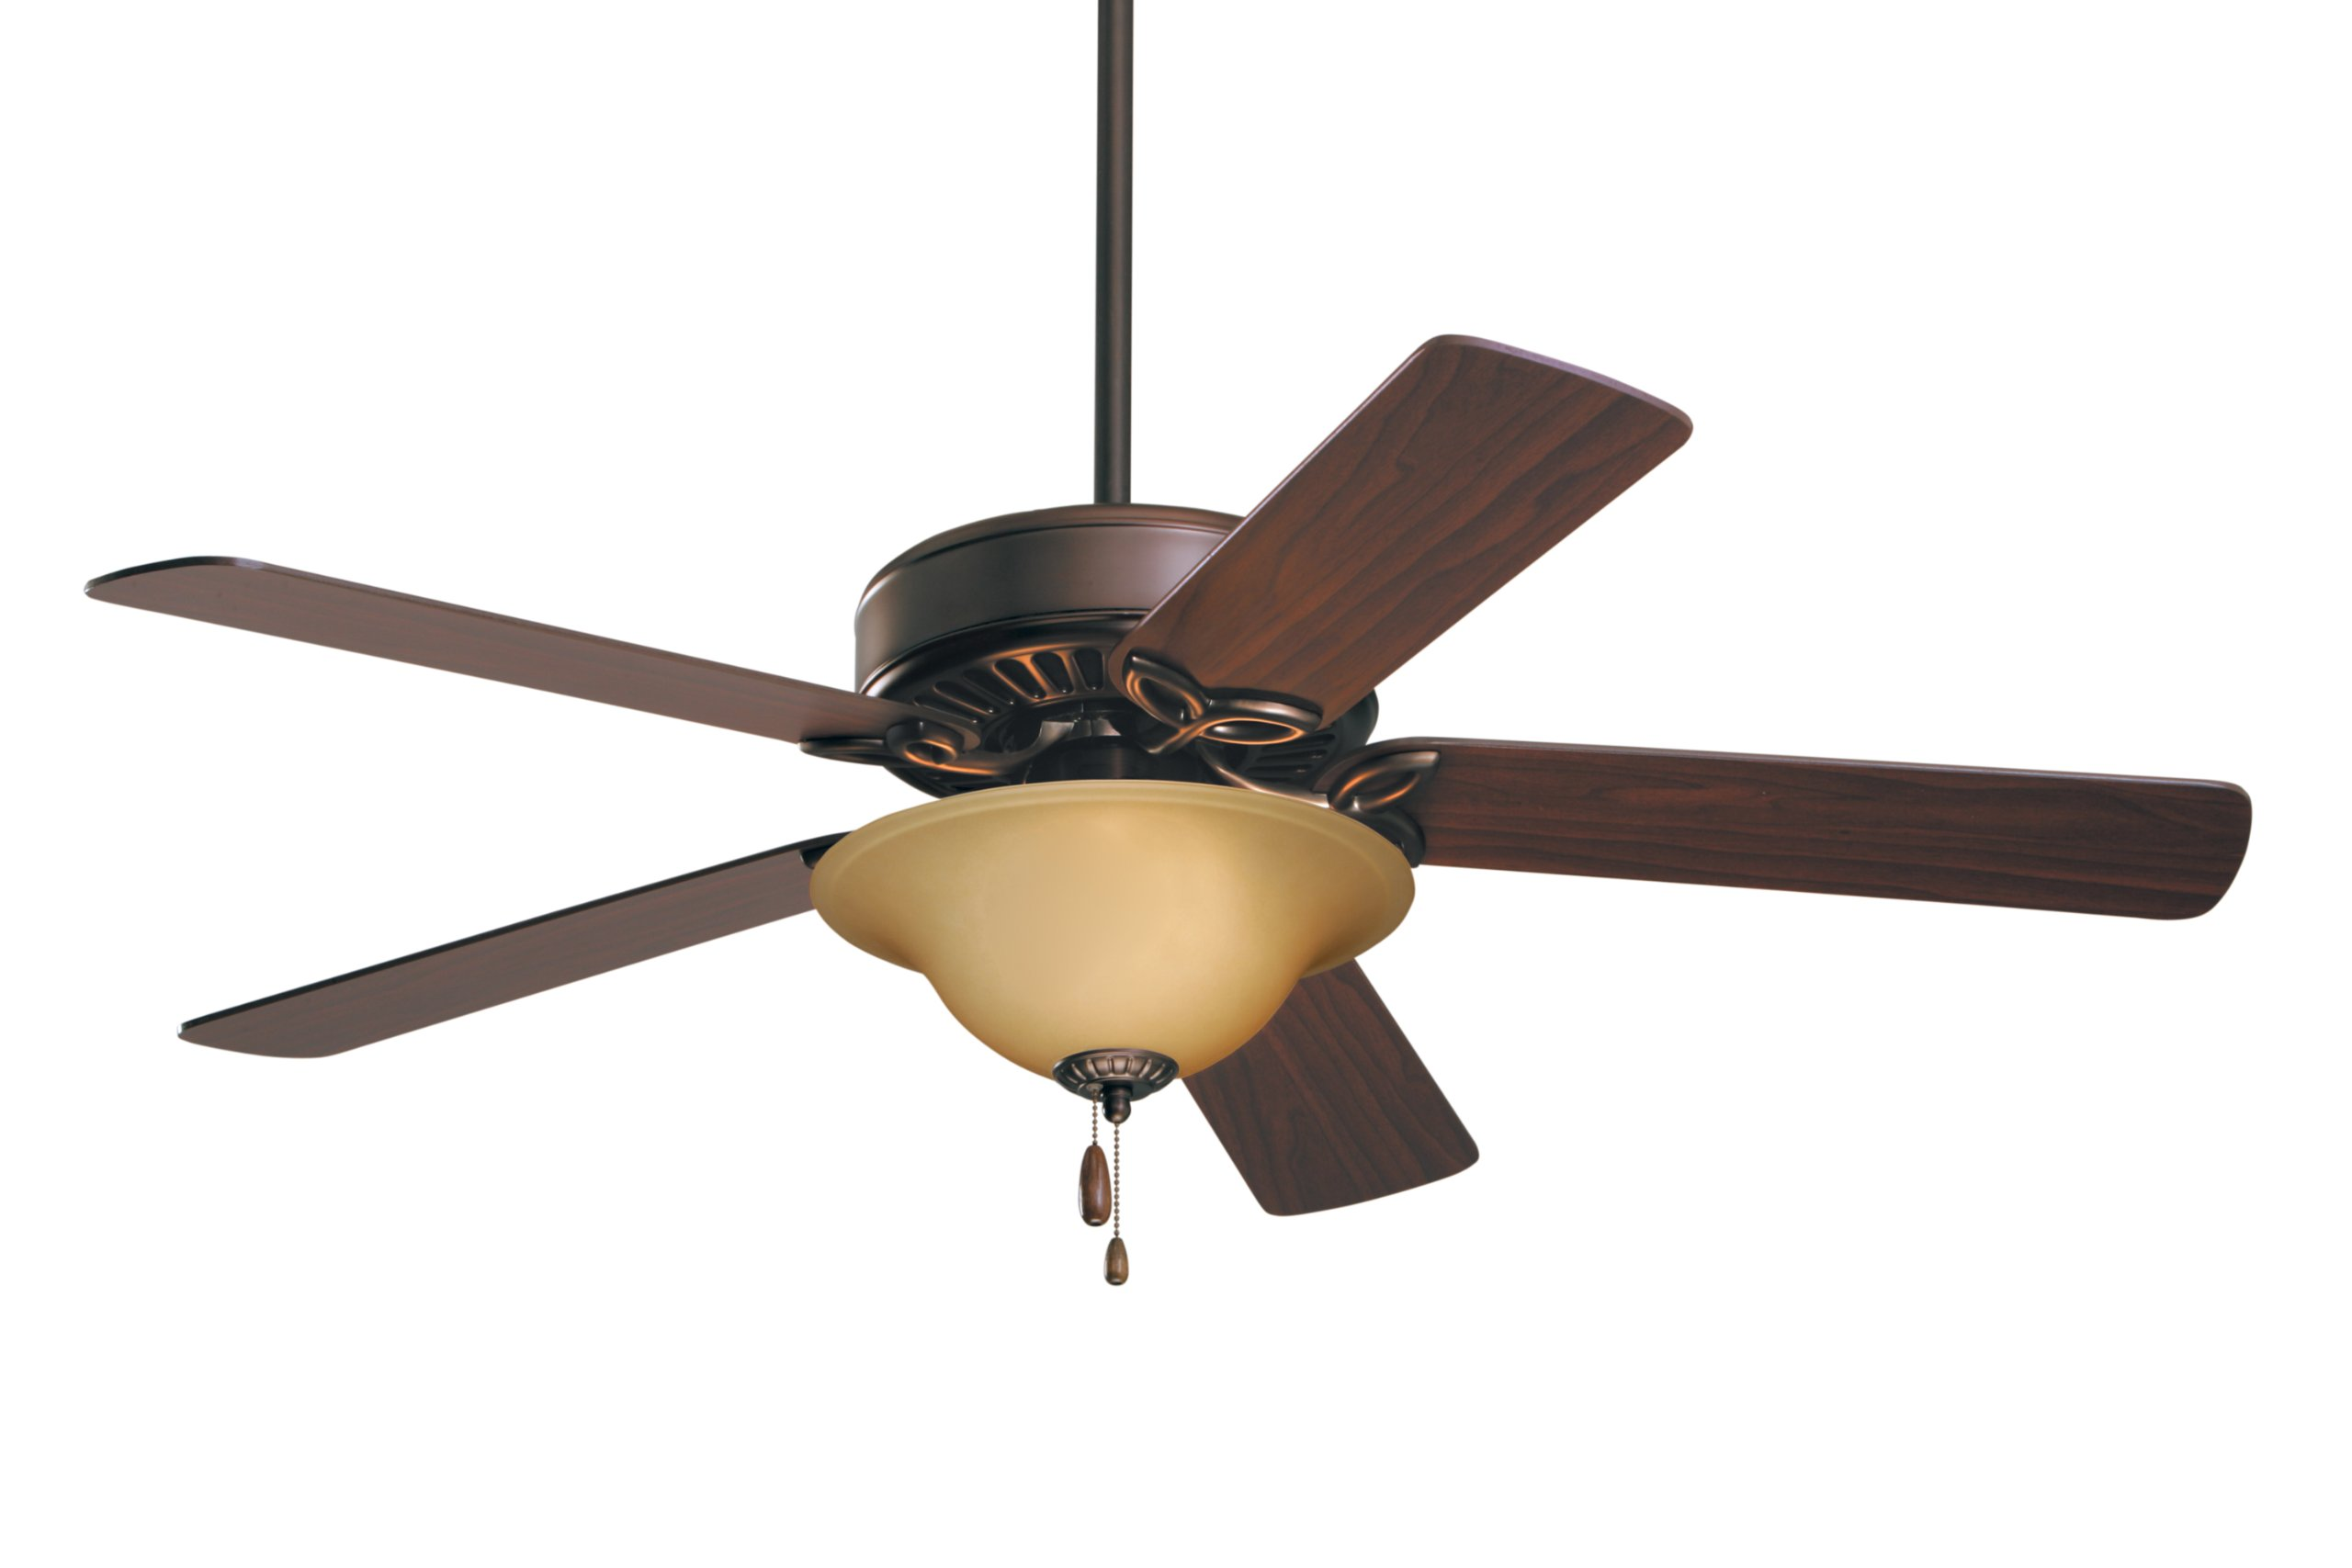 Emerson Ceiling Fans CF712ORB Pro Series Ceiling Fans, Indoor Ceiling Fan with Light, 50-Inch Emerson Fans Blades, Bronze Ceiling Fan with Oil Rubbed Bronze Finish by Emerson